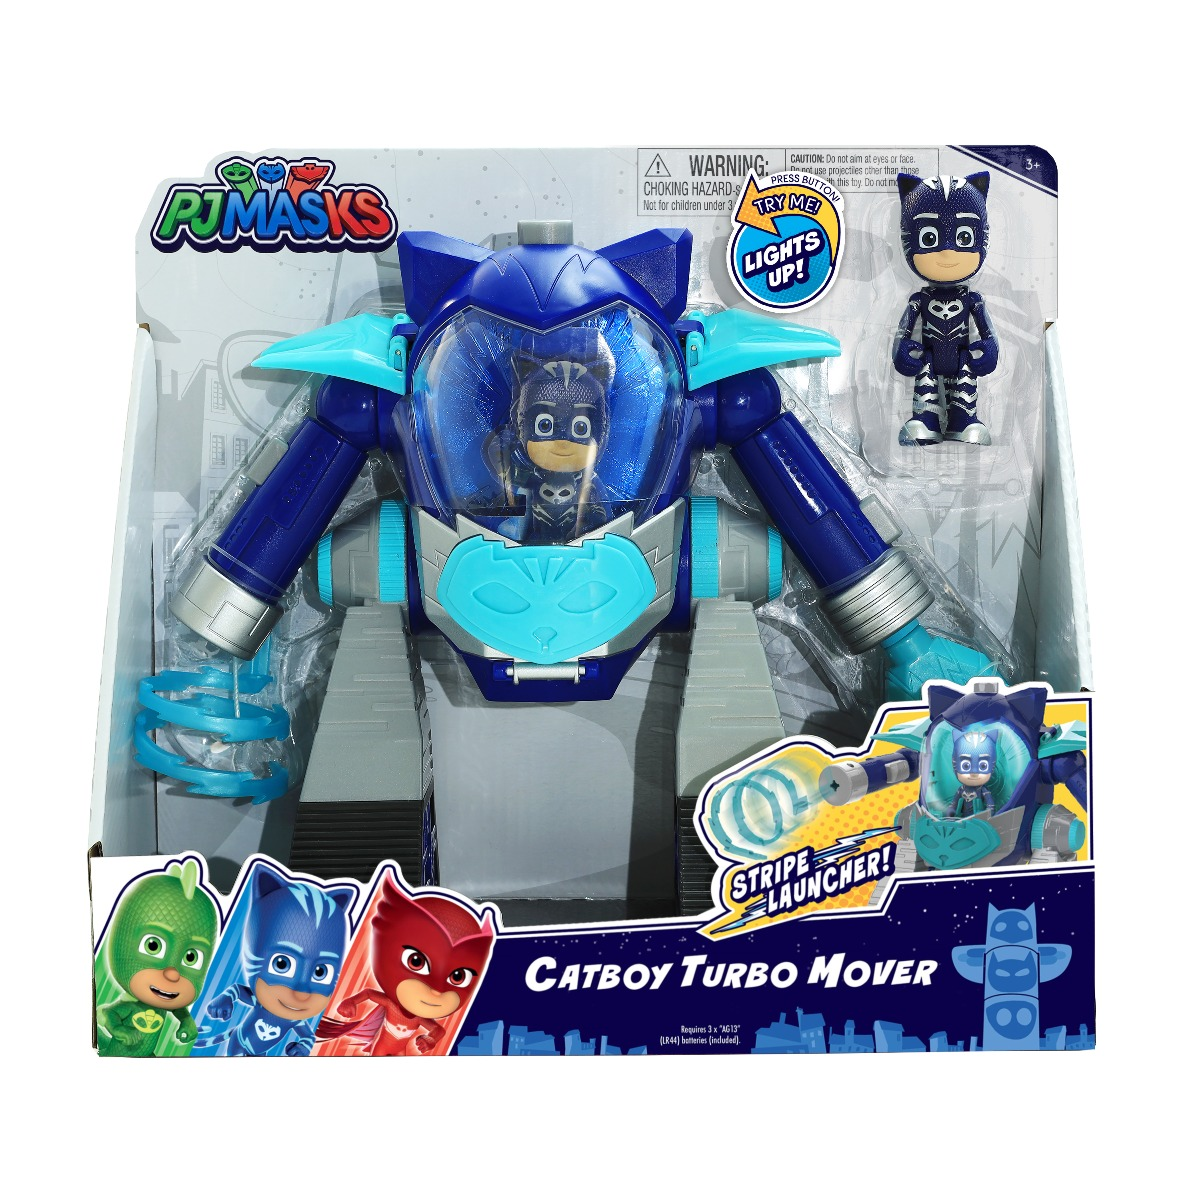 Figurina Pj Masks Turbo Mover, Catboy 95506